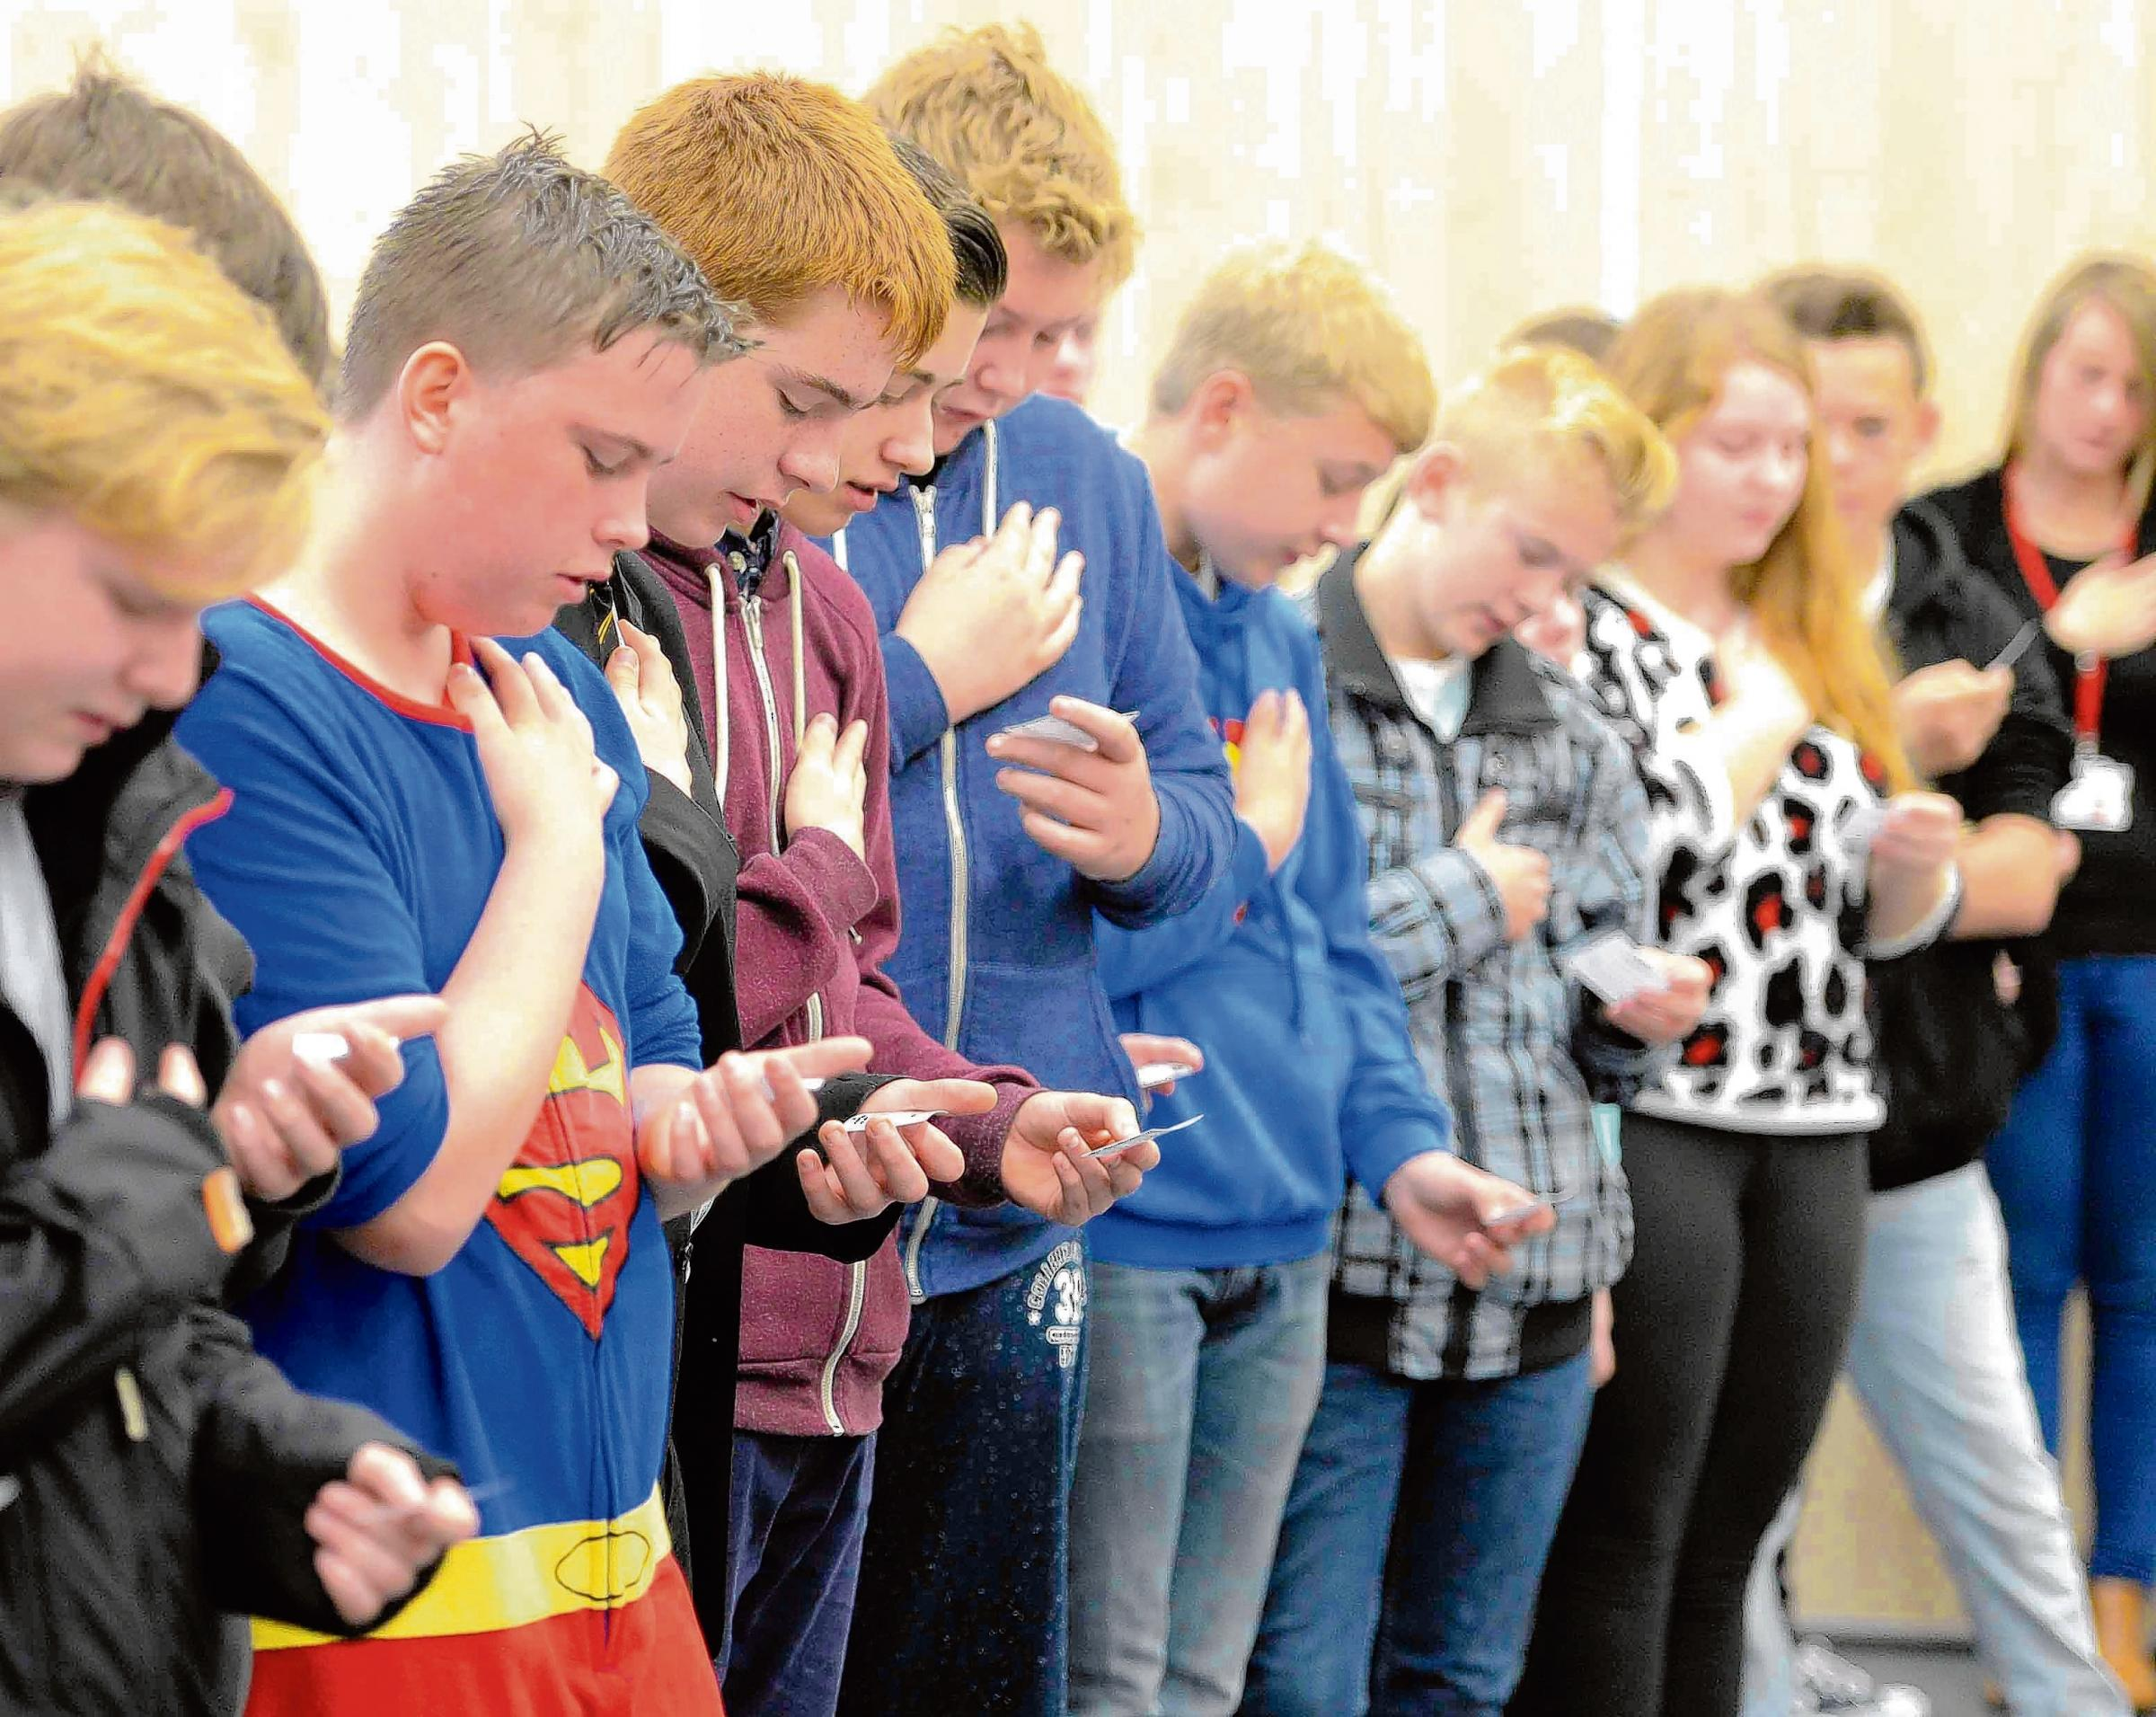 Hundreds of pupils make vow not to carry knives